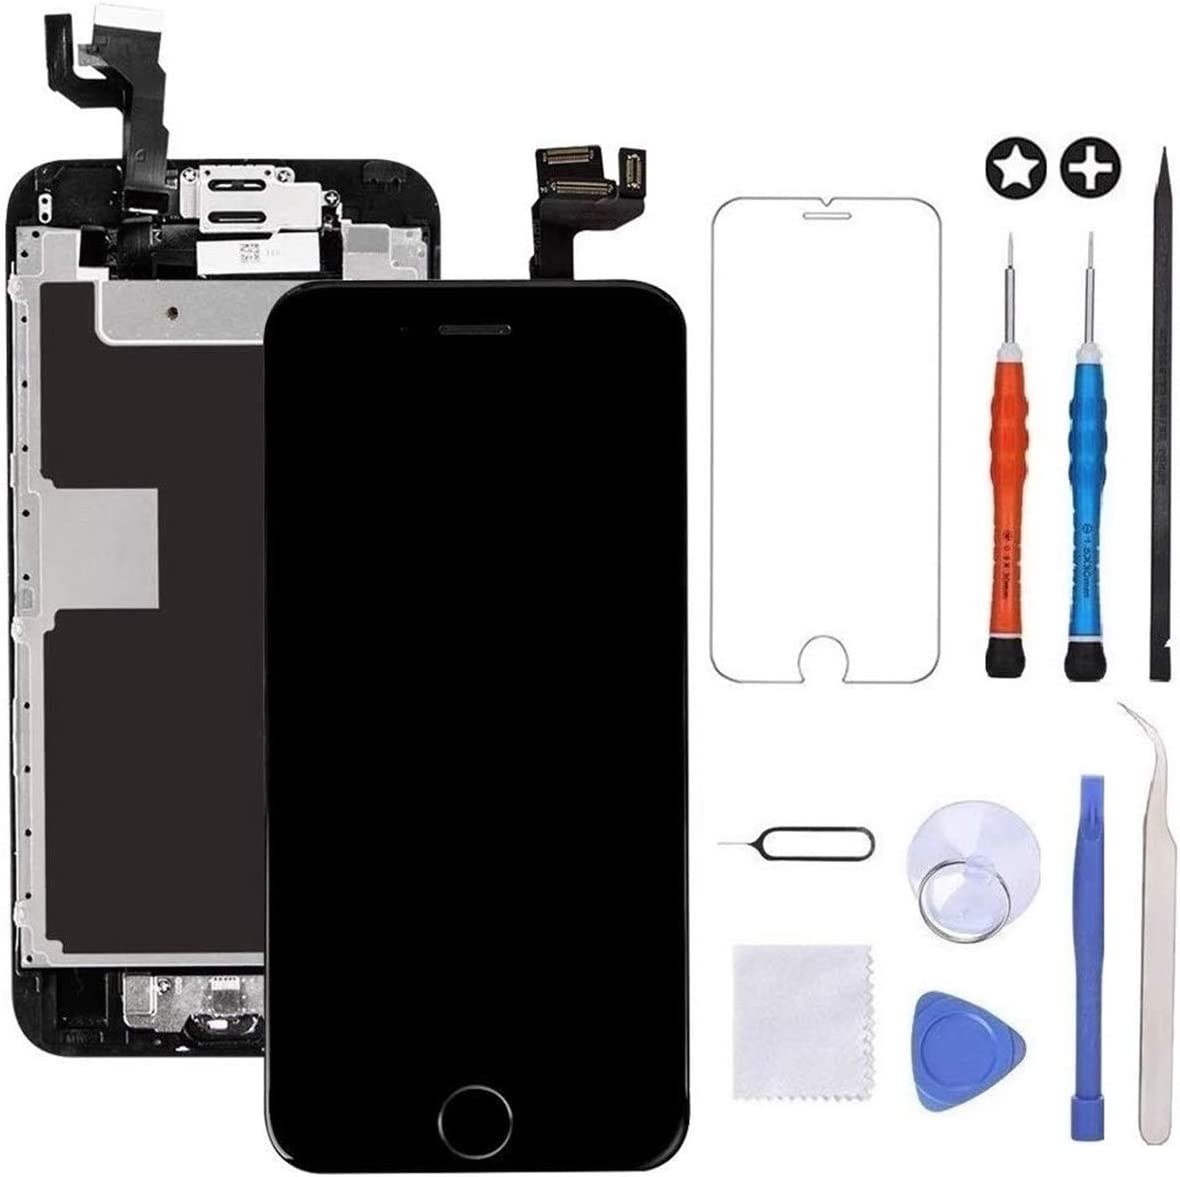 LCD Touch Display Digitizer with Sensors and Front Camera Fit Compatible with iPhone 6 Plus-White Screen Replacement Compatible with iPhone 6 Plus Full Assembly